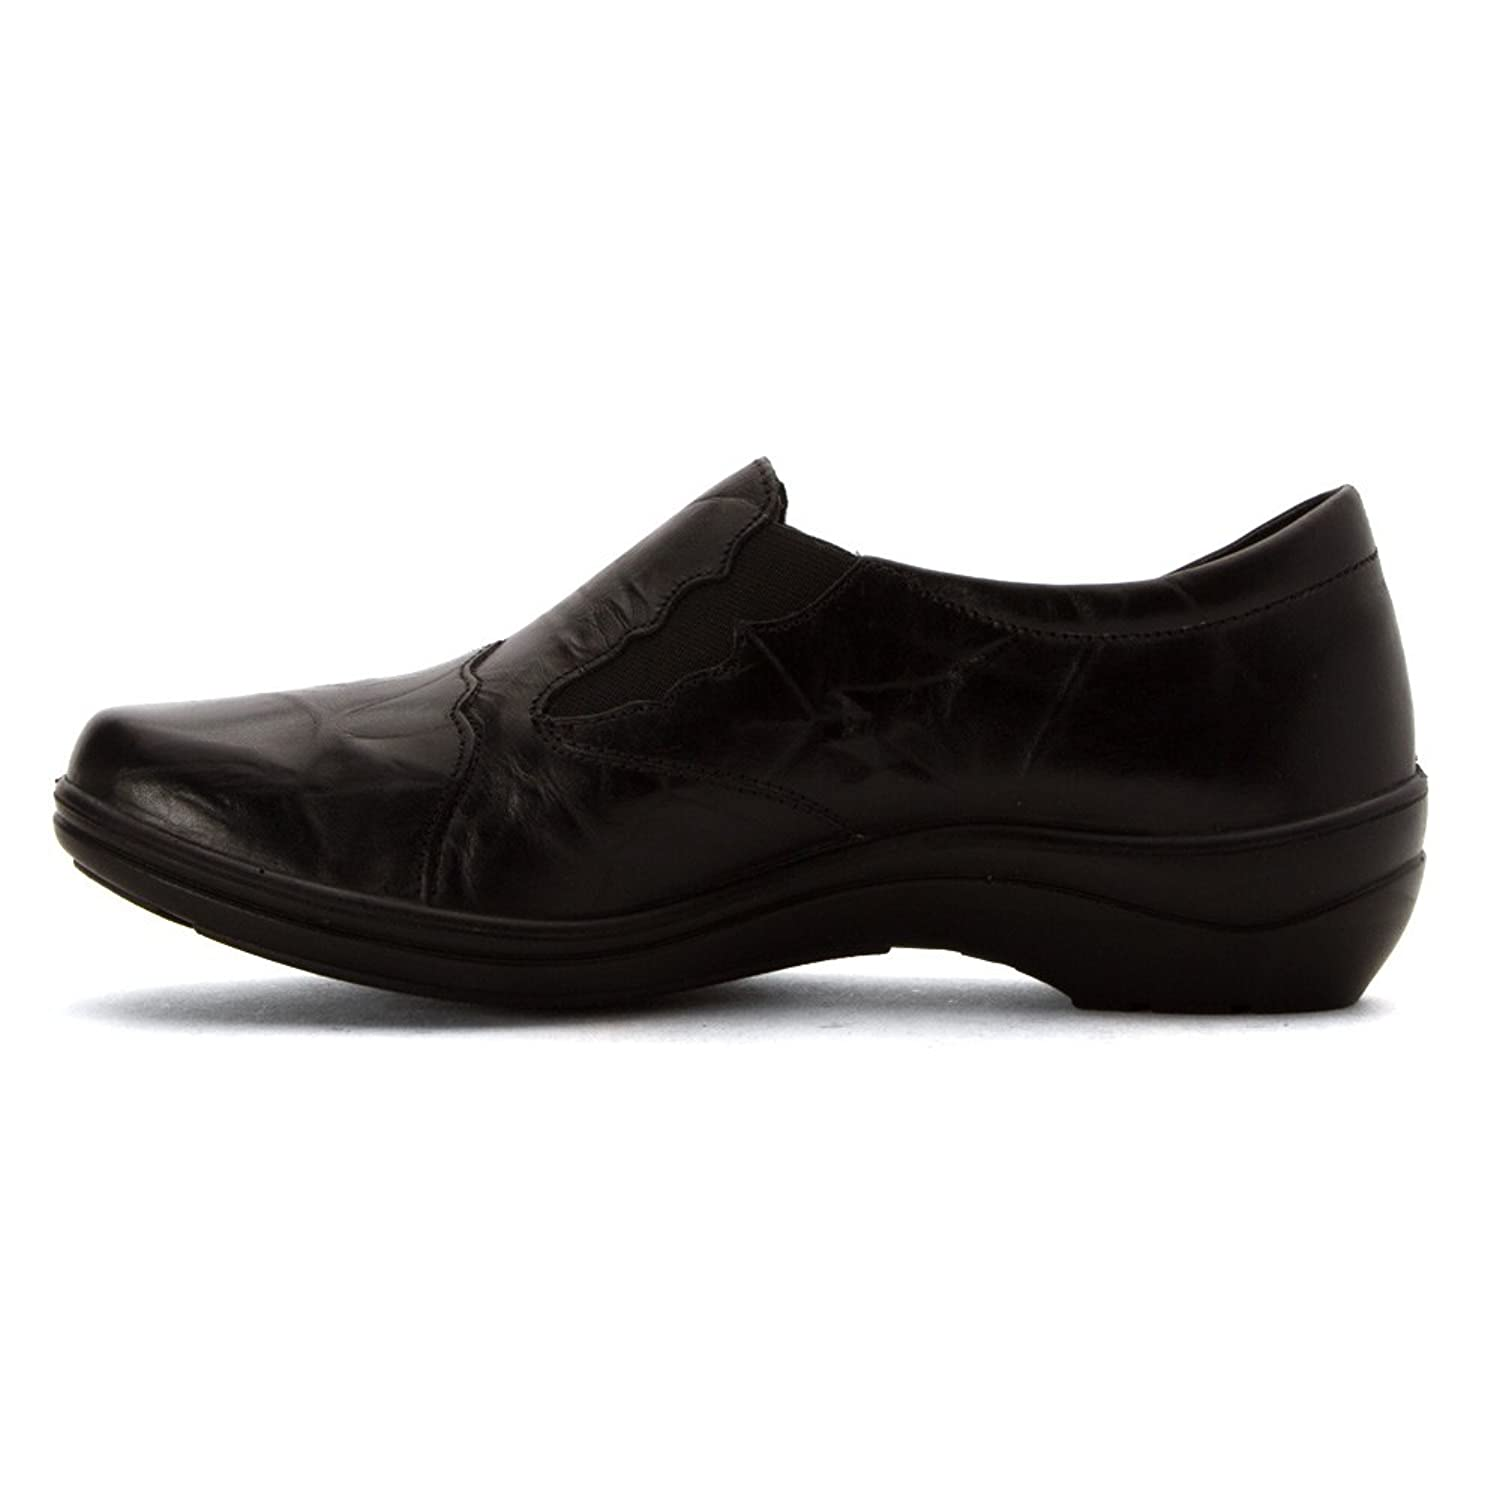 Cassie 24 Slip-On Loafers wha37